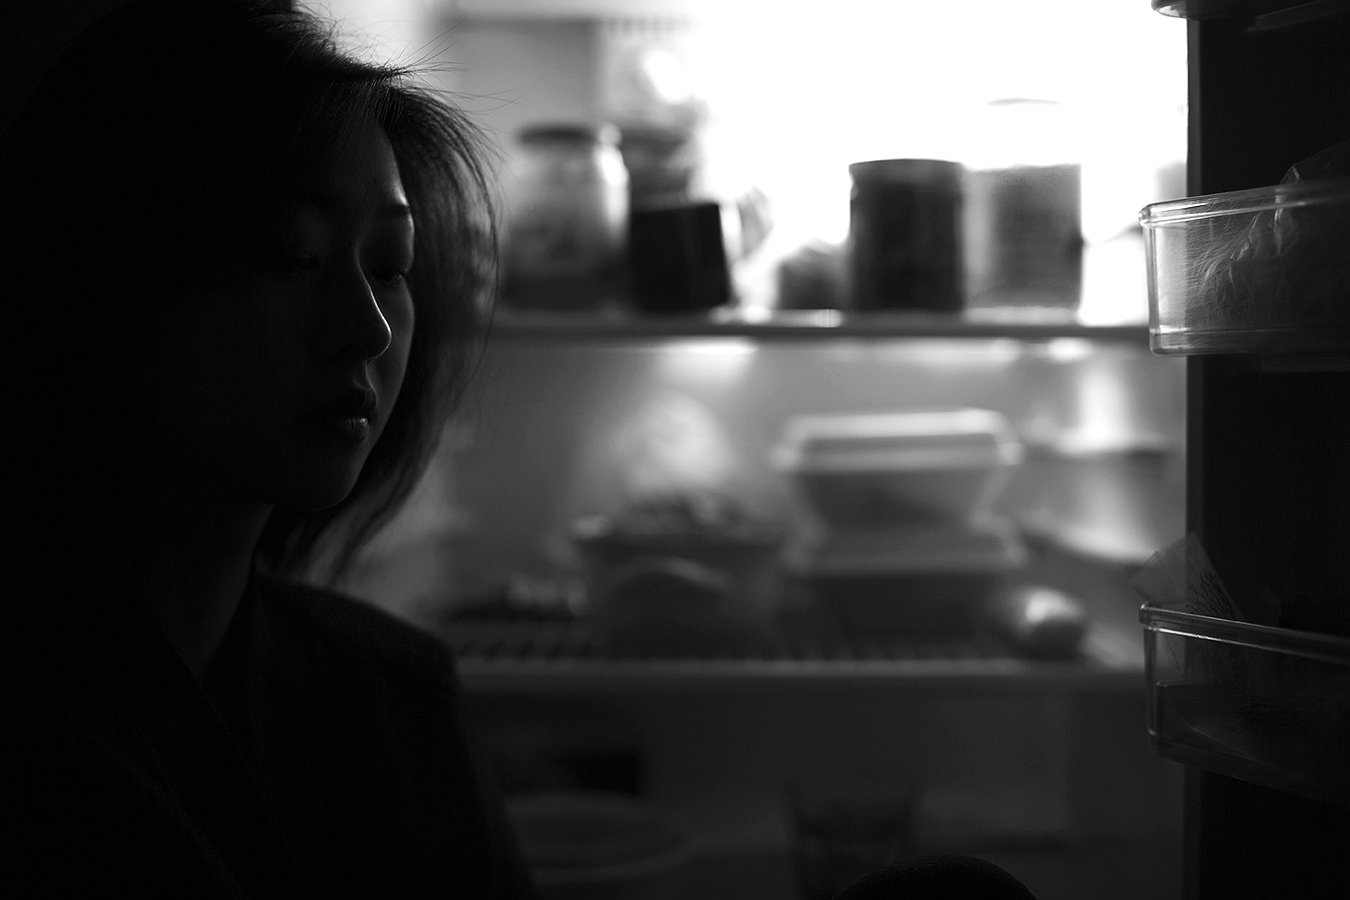 Linda_Ruan_in_front_of_a_refridge_black_and_white